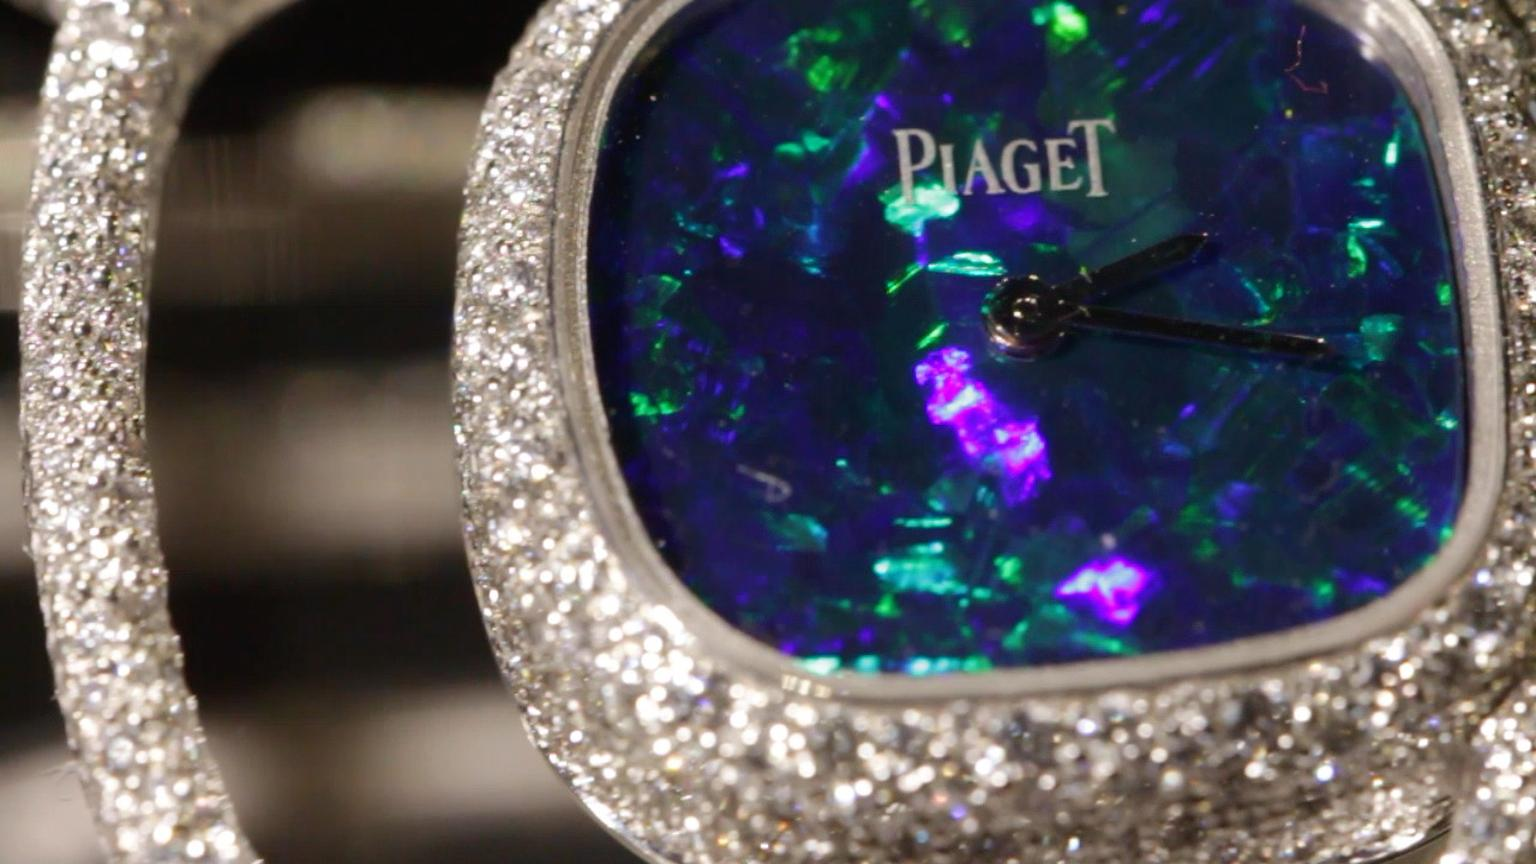 The Extremely Piaget collection Reversible cuff watch in white gold is set with 11.7ct of 2,008 brilliant-cut diamonds in a snow-setting. It also features a natural opal dial on the front and natural onyx dial on the back.